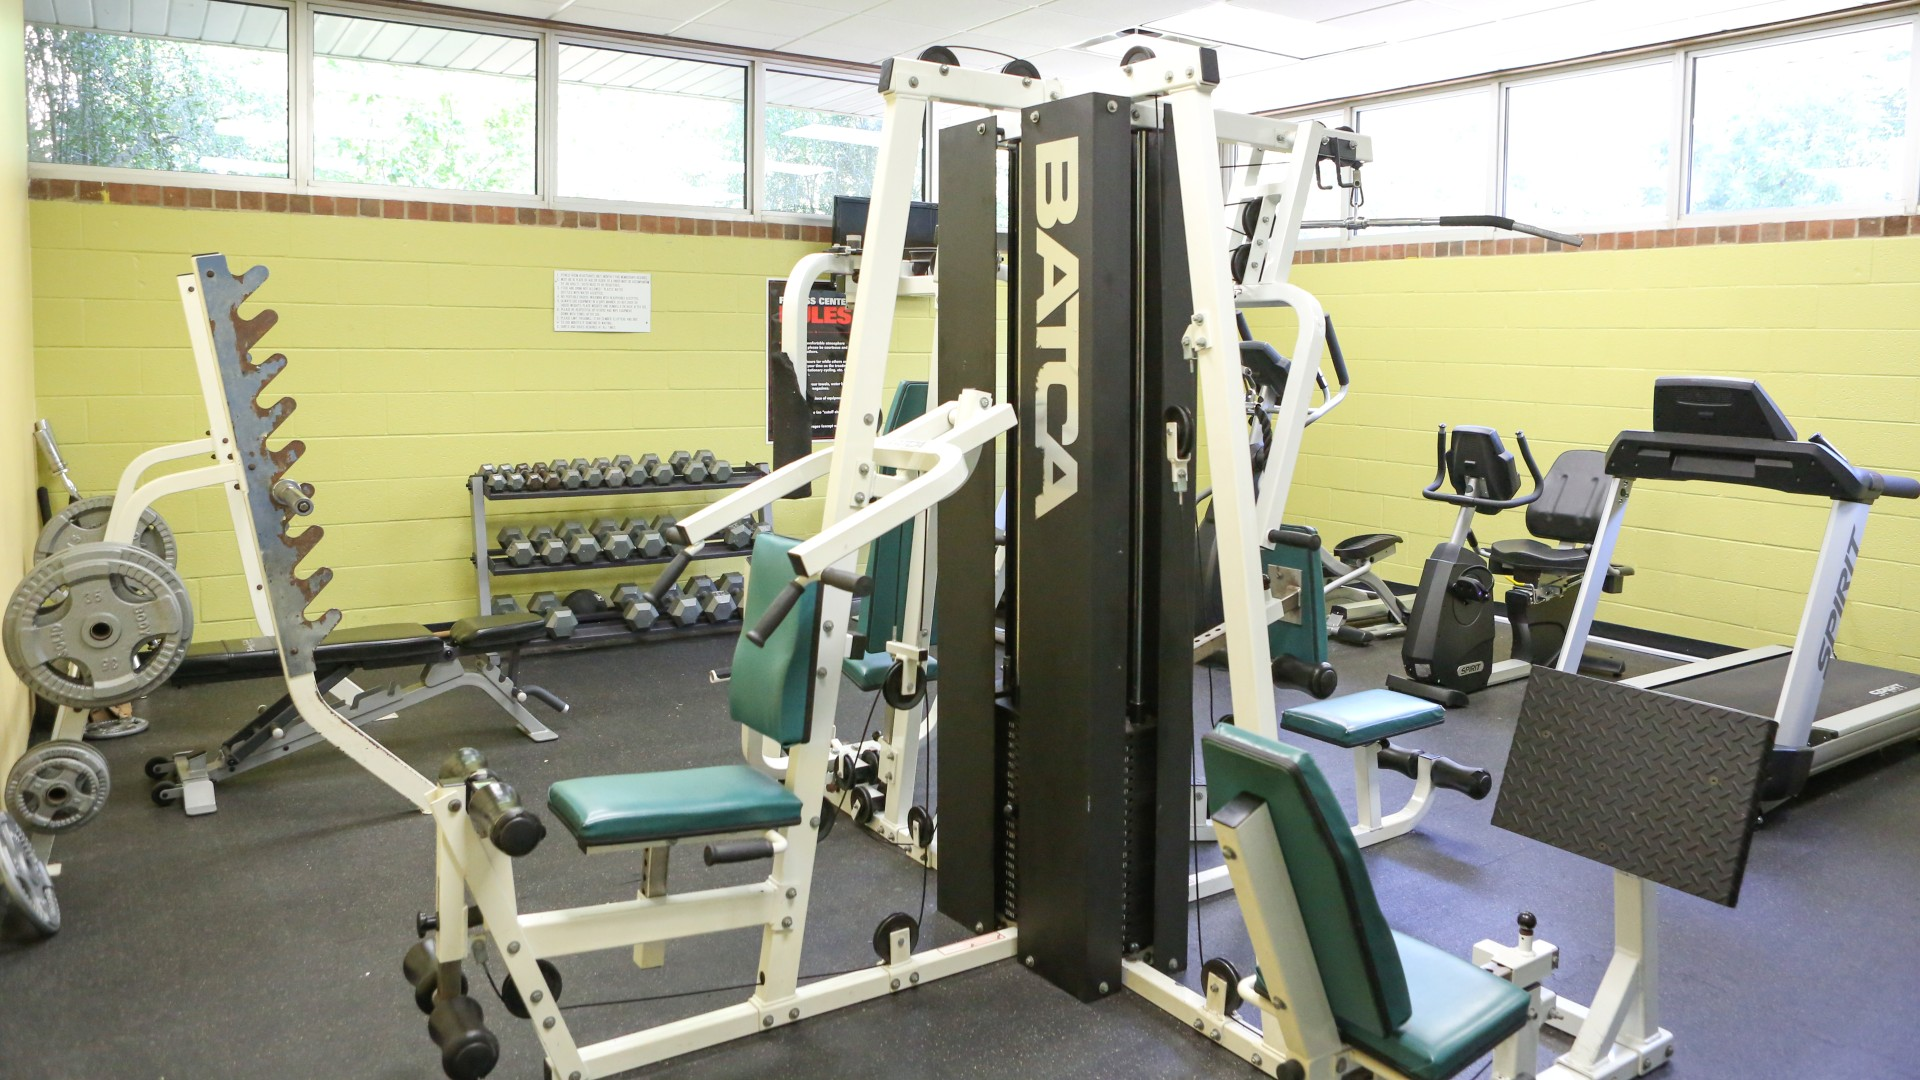 A variety of gym equipment and weights